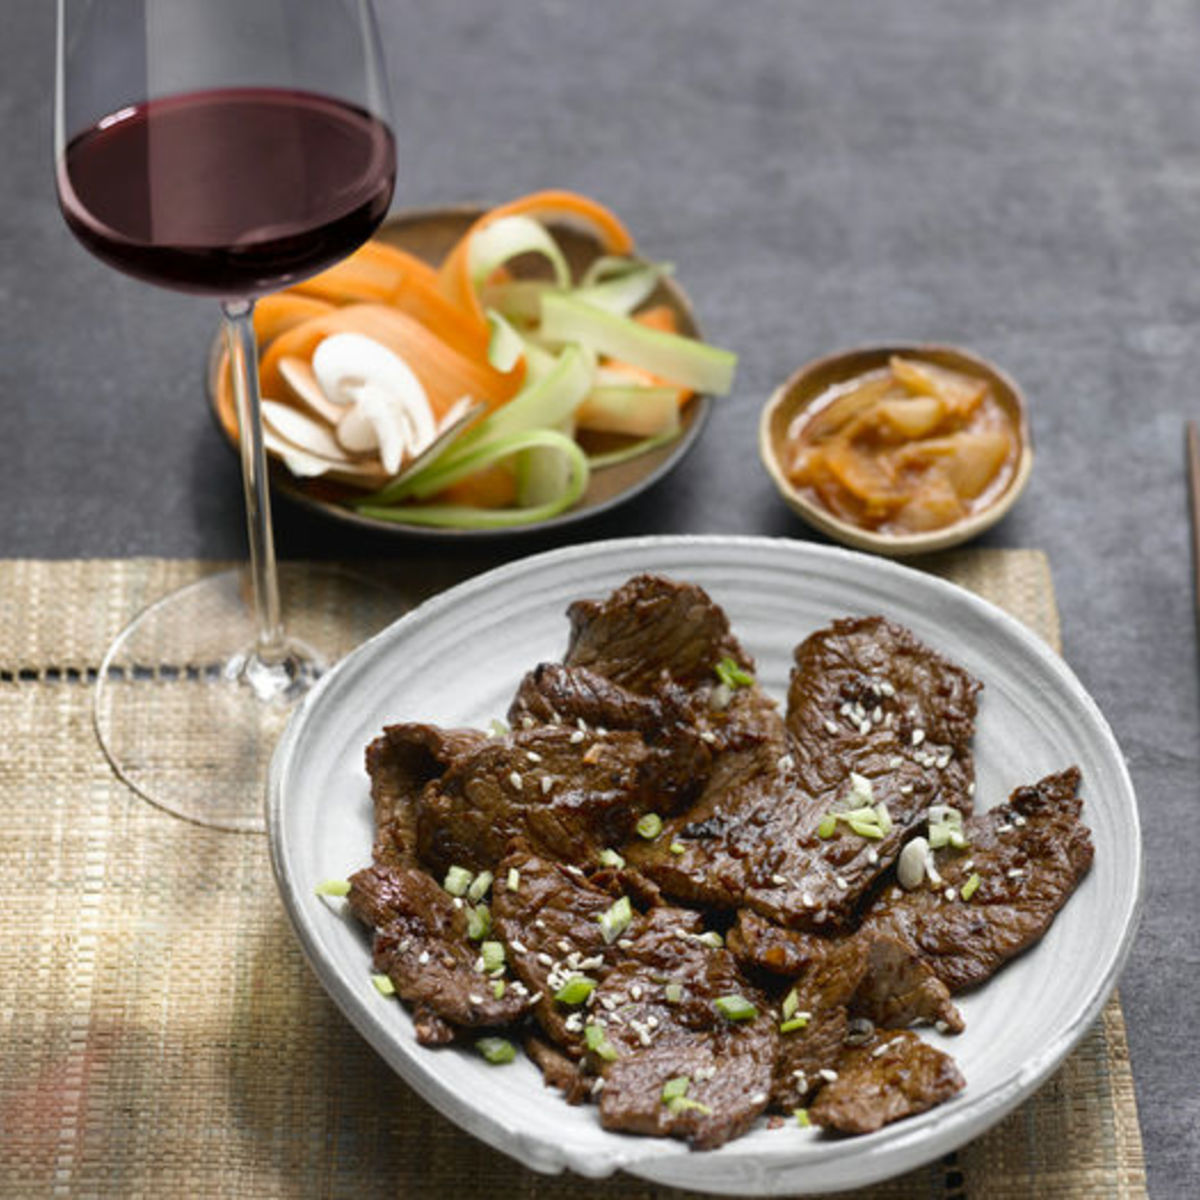 The picture shows the dish Bulgogi and a glass of red wine.